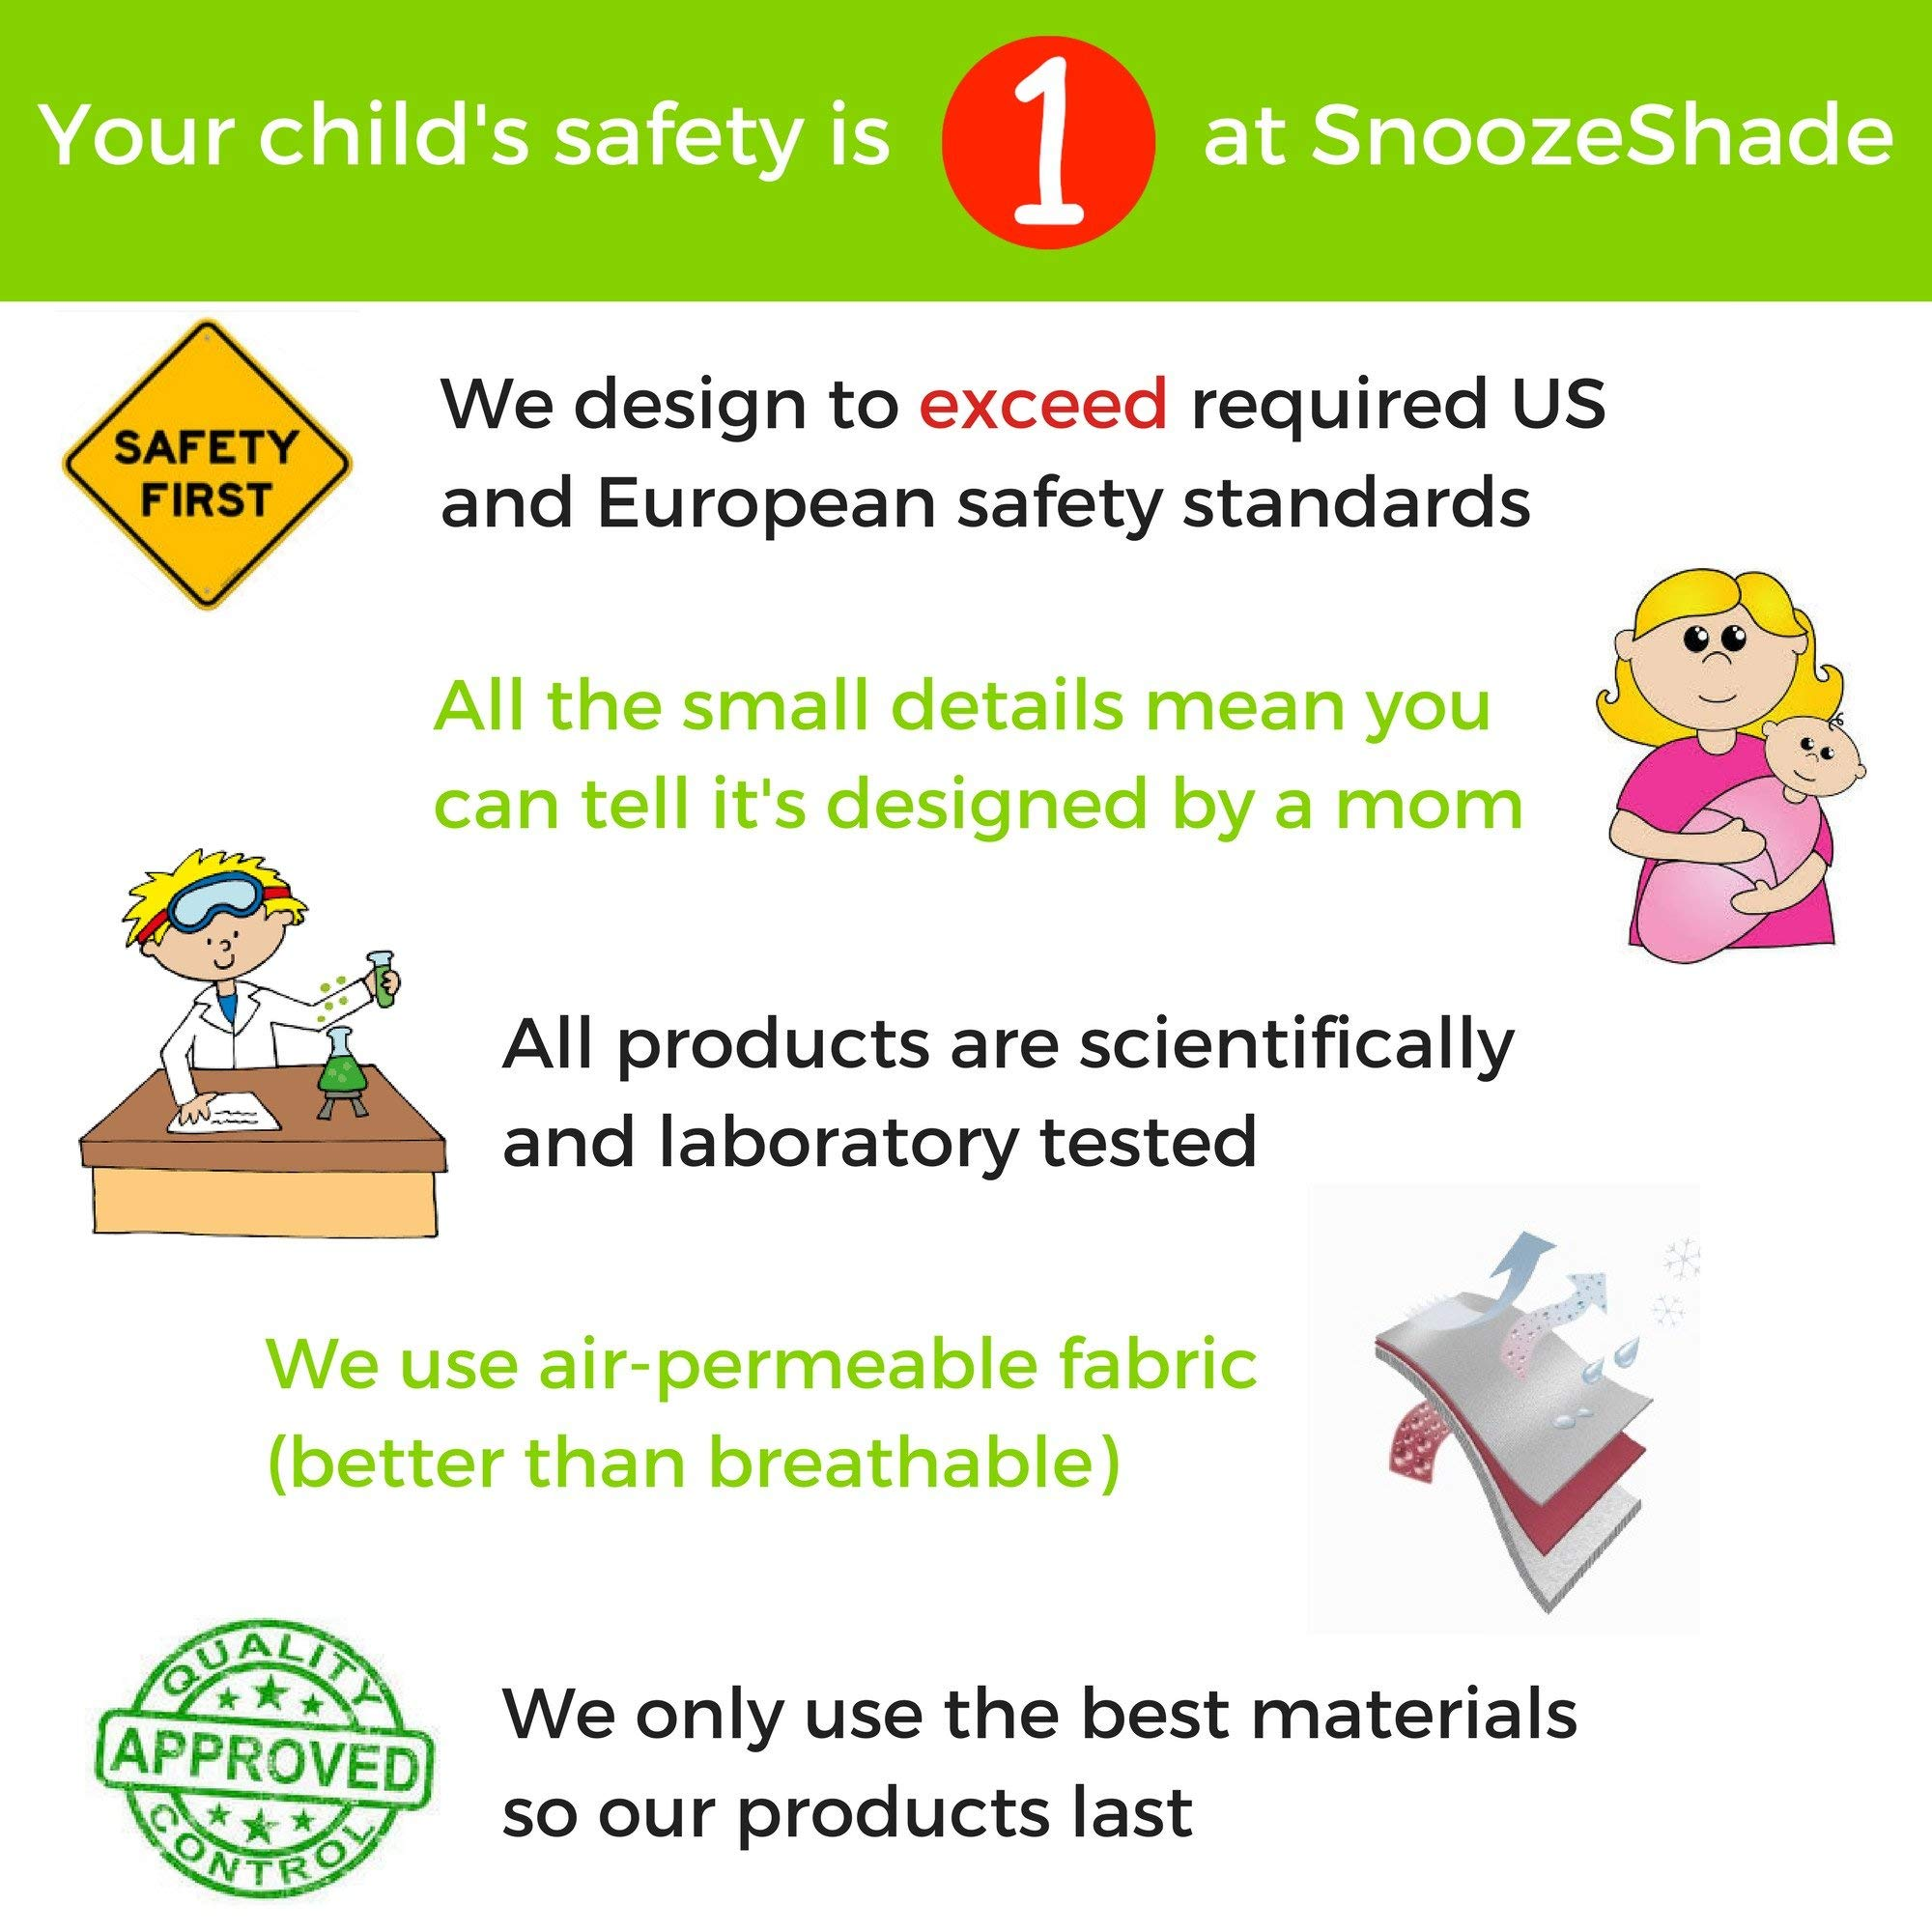 SnoozeShade Plus Deluxe | Universal fit sun shade for strollers | 360-degree sun and UV protection | Sleep shade and mosquito net | Recommended for 6m+ by SnoozeShade (Image #5)